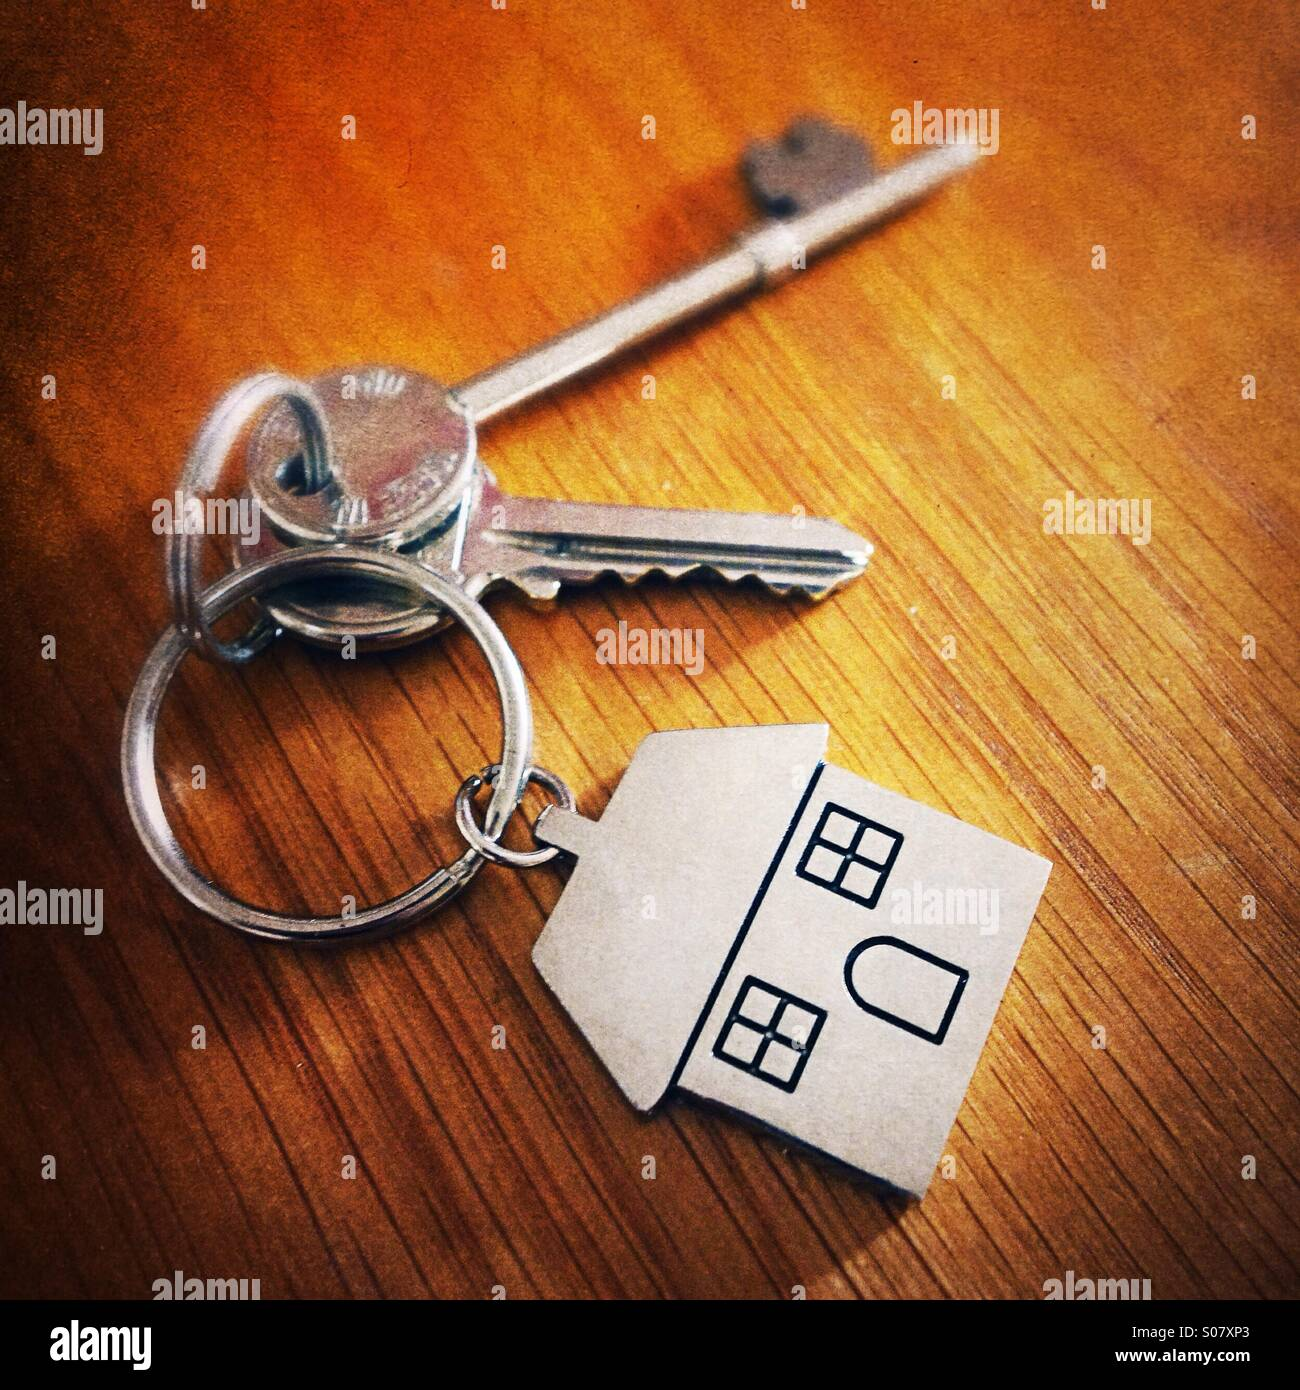 House keys on a table top Stock Photo: 309961291 - Alamy